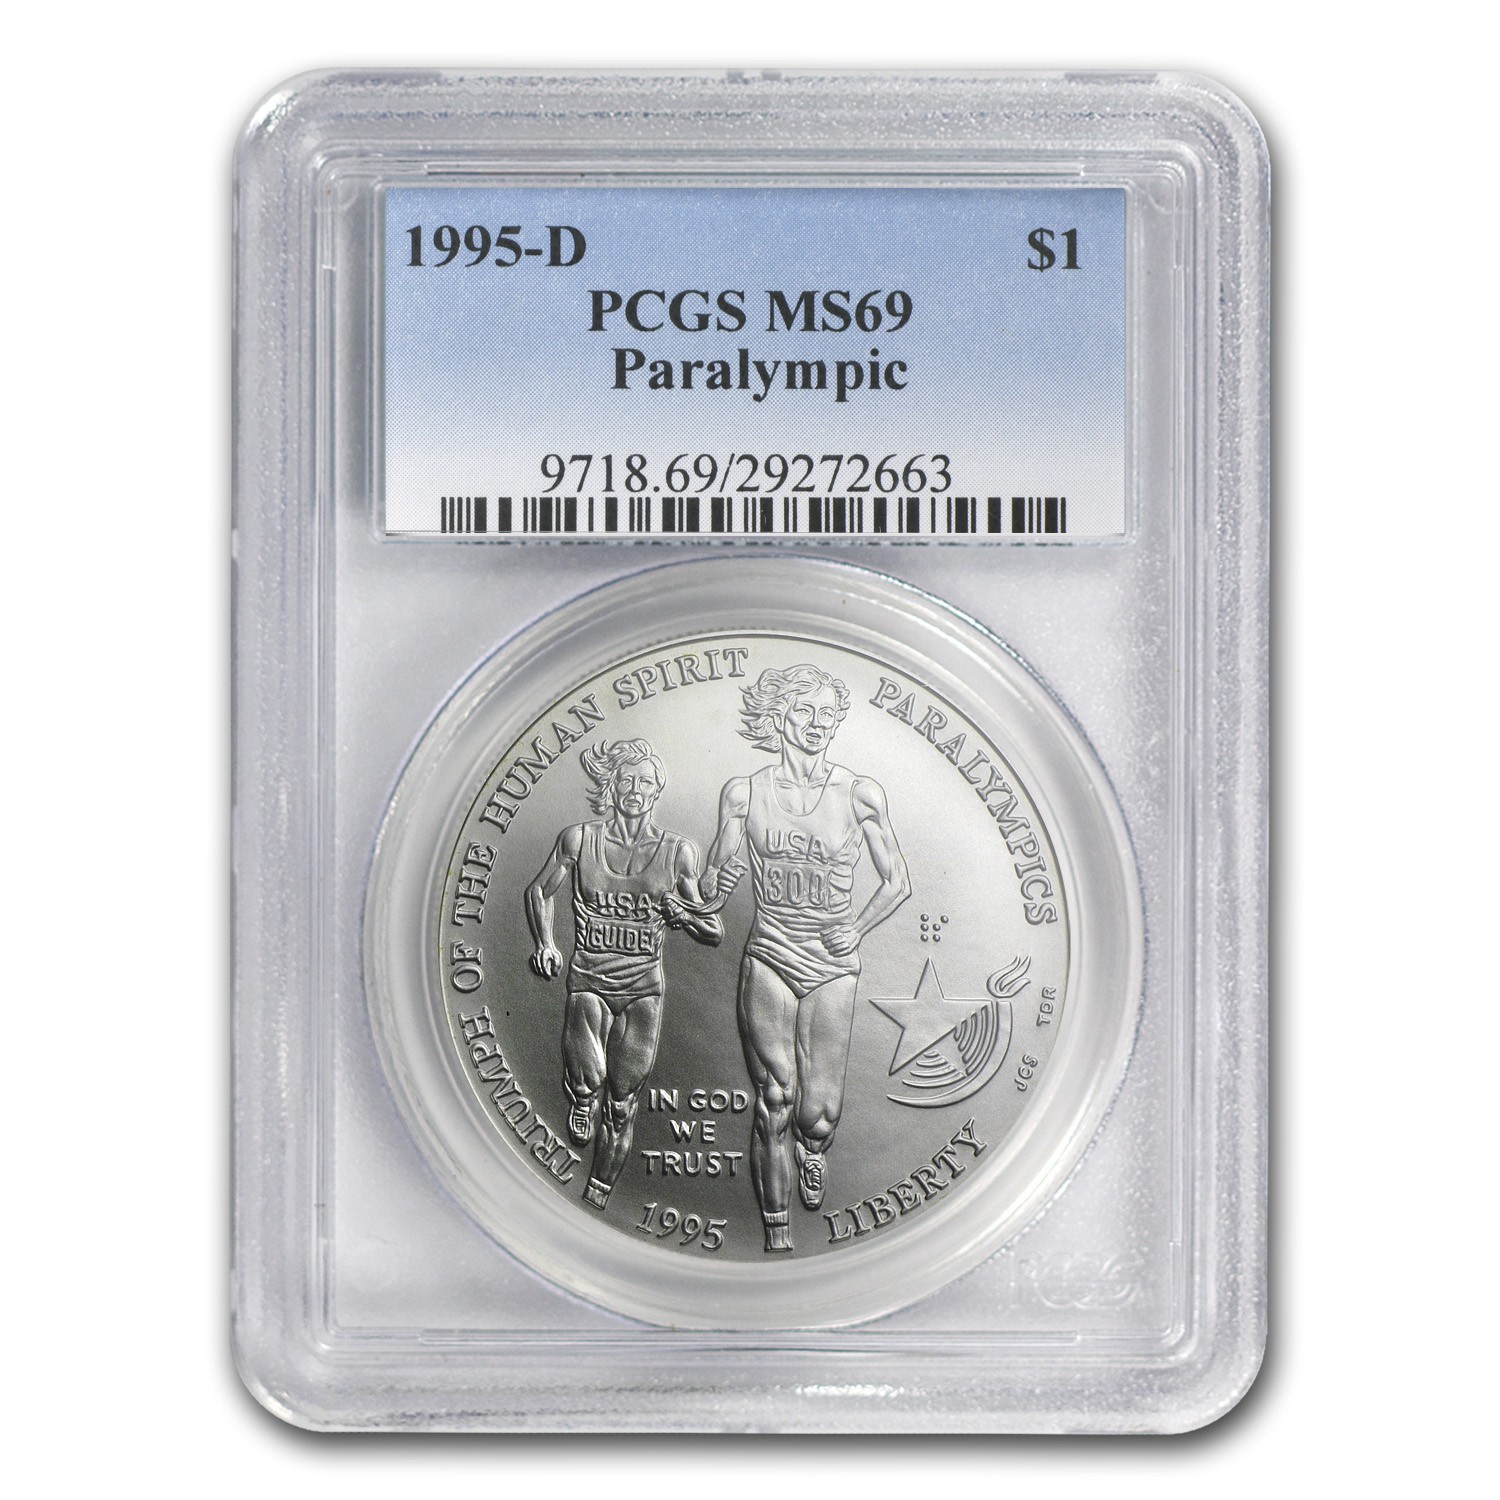 1995-D Olympic Blind Runner $1 Silver Commemorative MS-69 PCGS